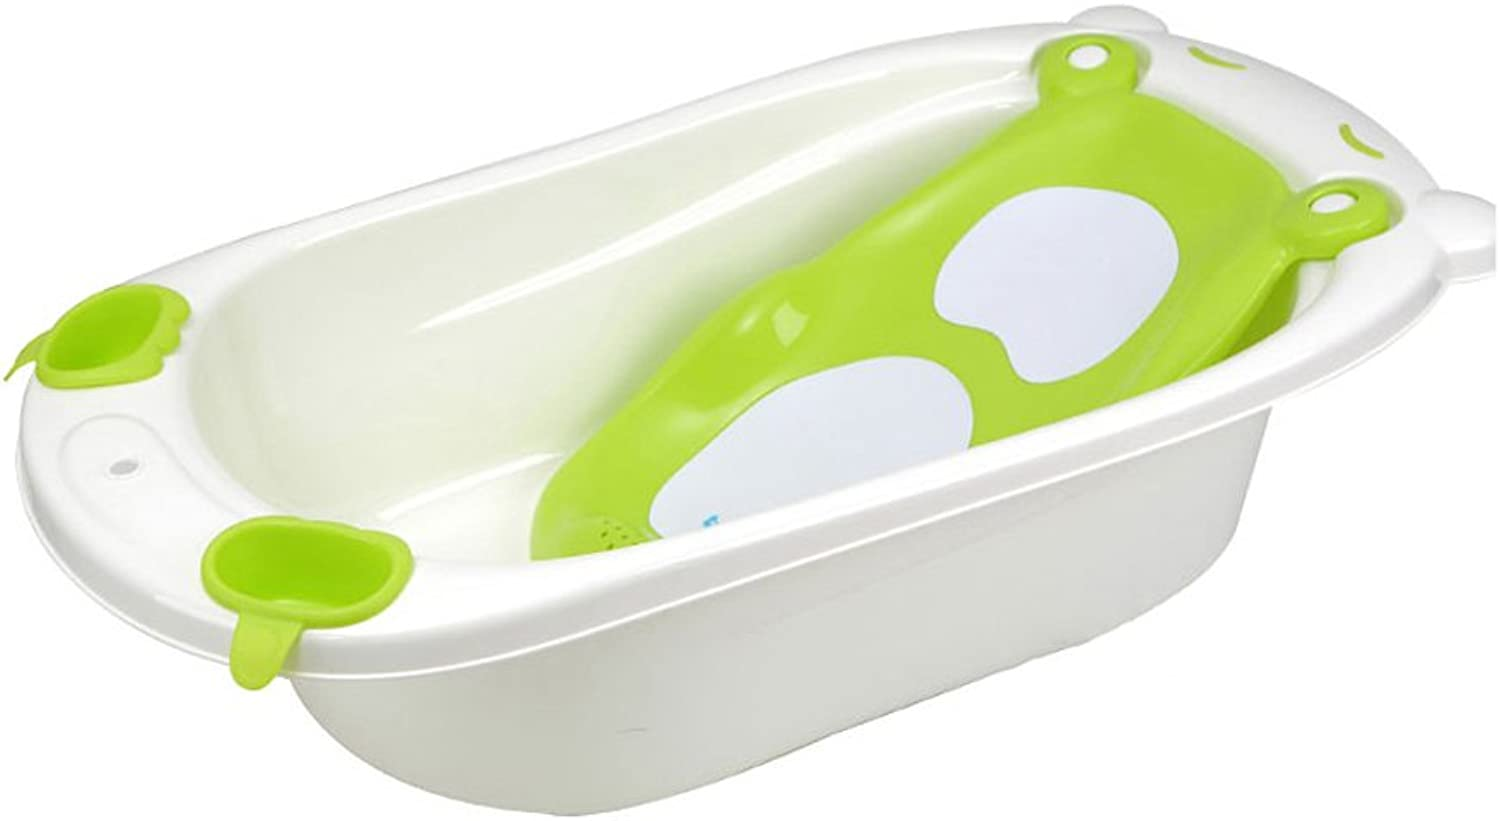 Bathtub Non-slip Portable, Reclining Tub Household Plastic Multi-function 0-4 Years Old Baby Comfortable And Durable Material Safety Stable And Not Deformed (color   GREEN)